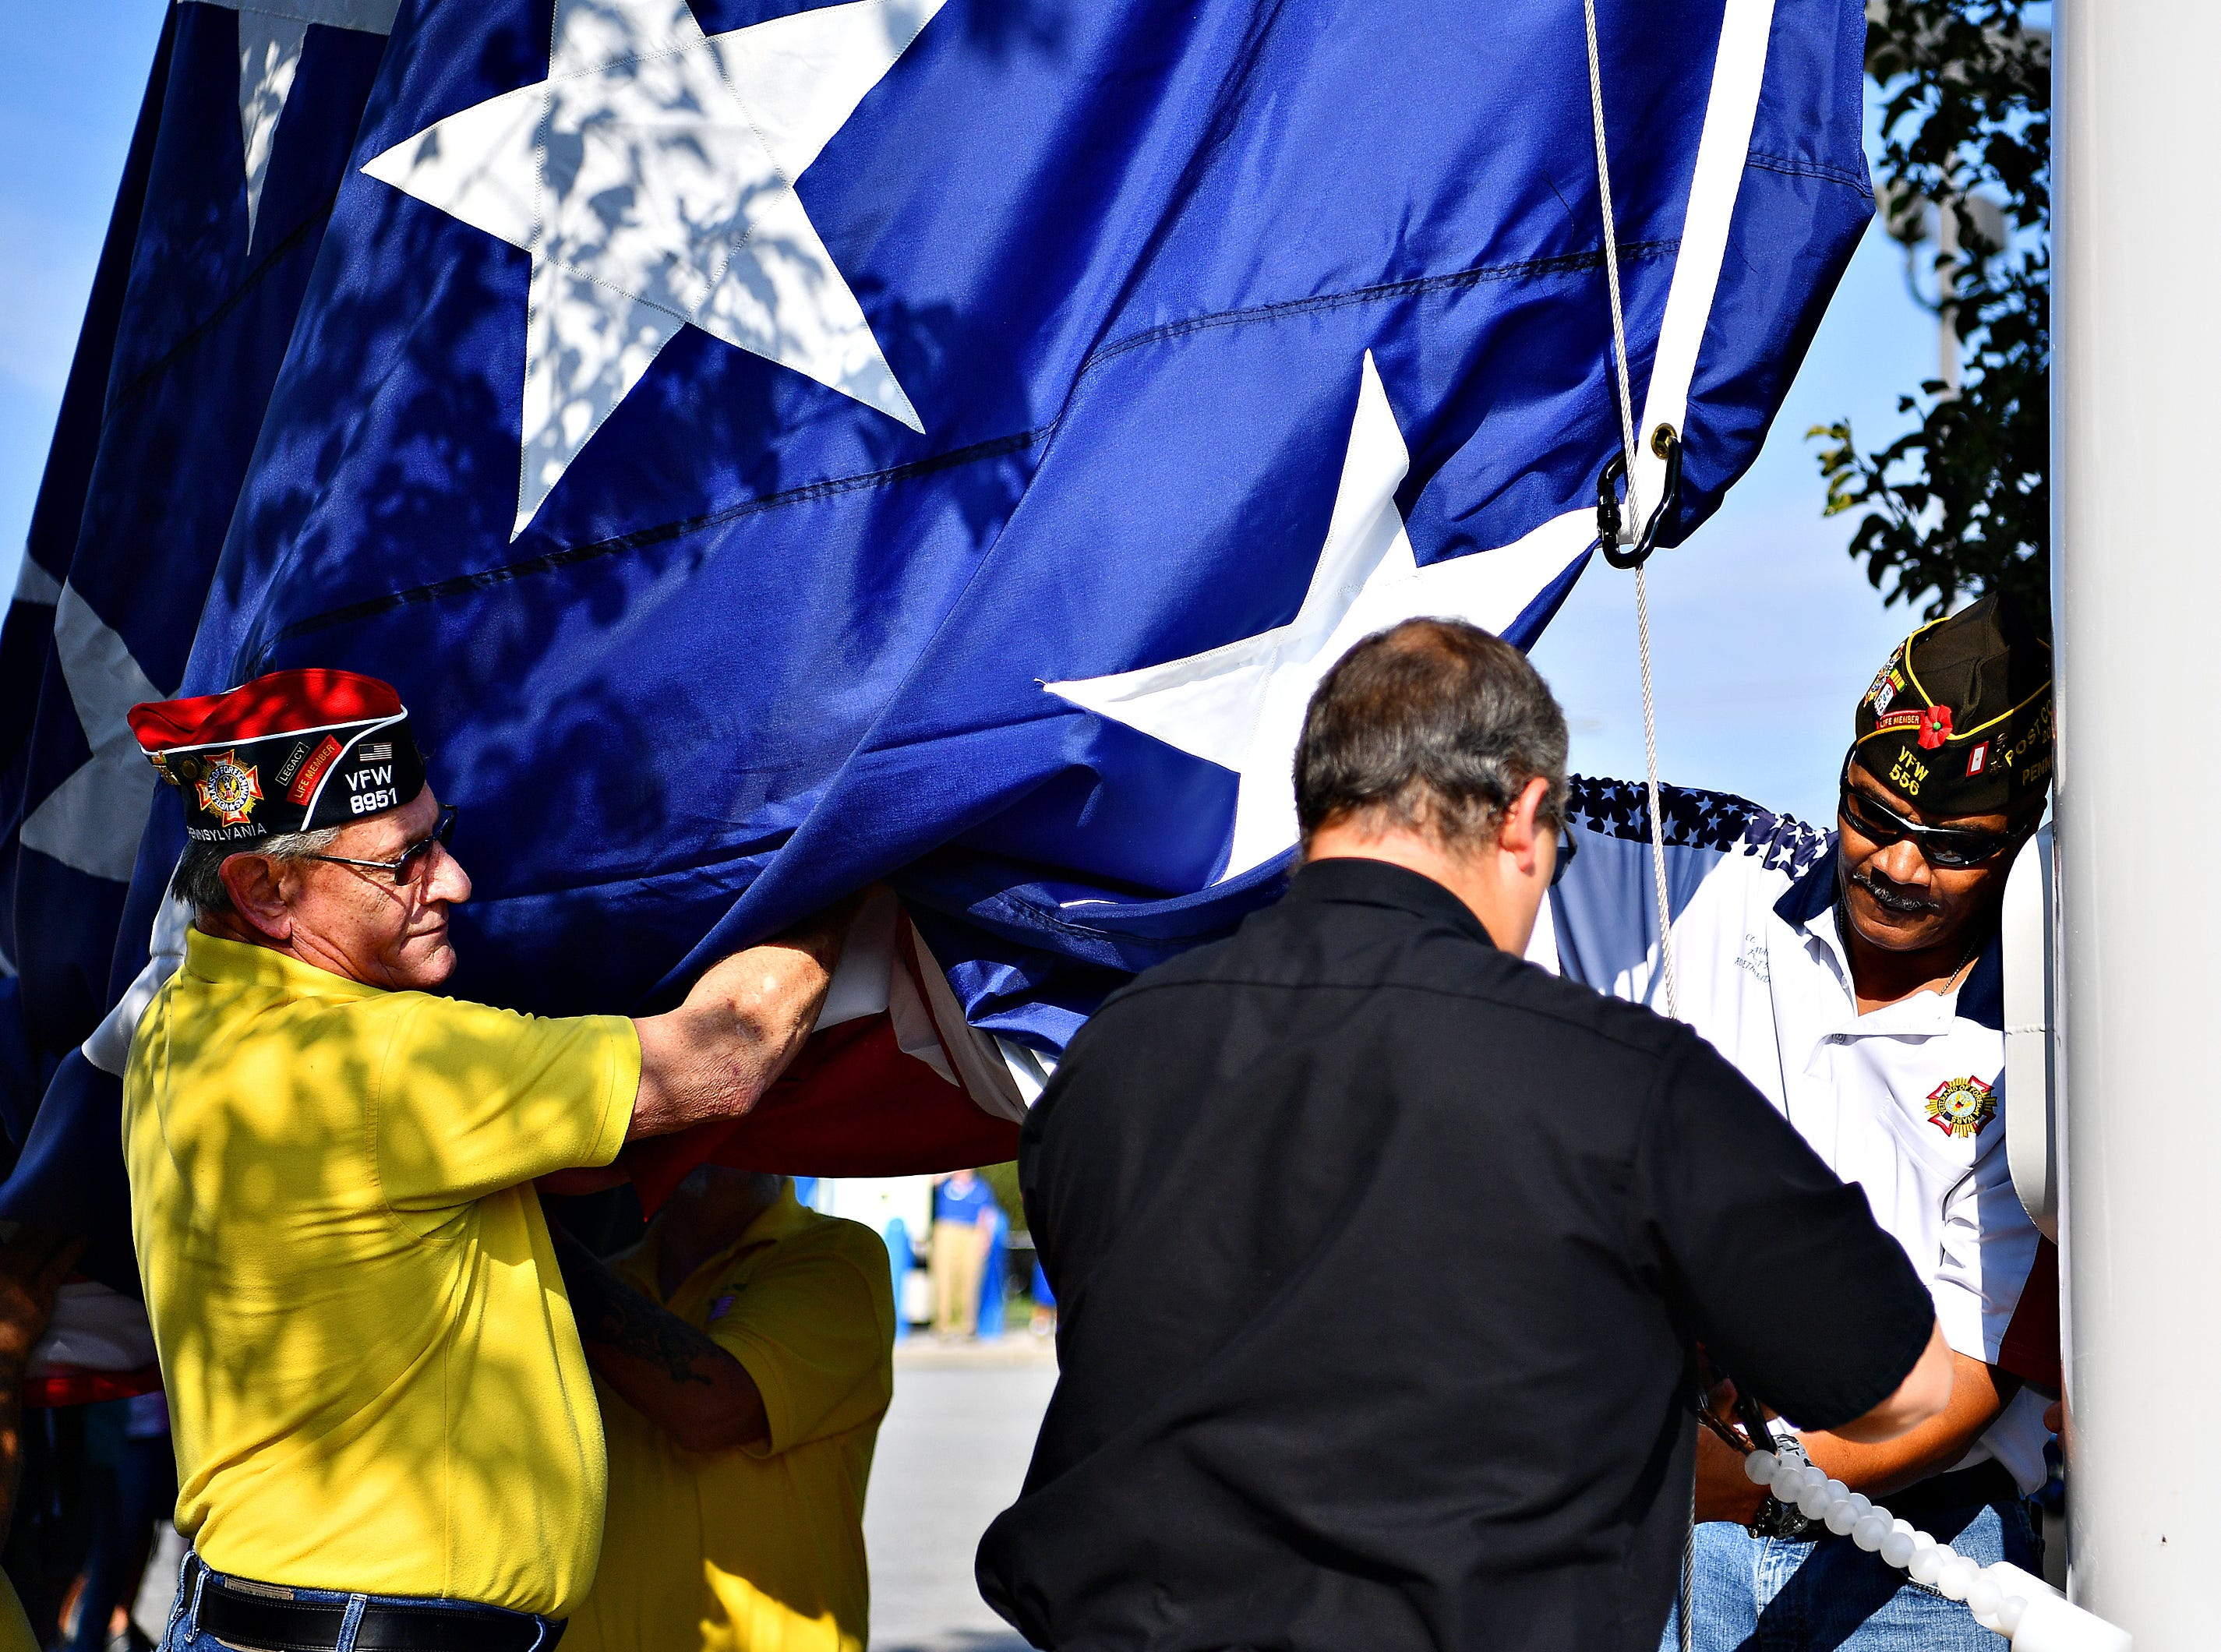 From left, Bob Shank, of West York Borough VFW, Gander Outdoors Gearsmith Bill Maurer, and Ron Etheridge, of VFW 556, secure the flag to the pole as Gander Outdoors ceremoniously raises their 80 by 40 foot American flag at their store in West Manchester Township, Friday, Aug. 10, 2018. Dawn J. Sagert